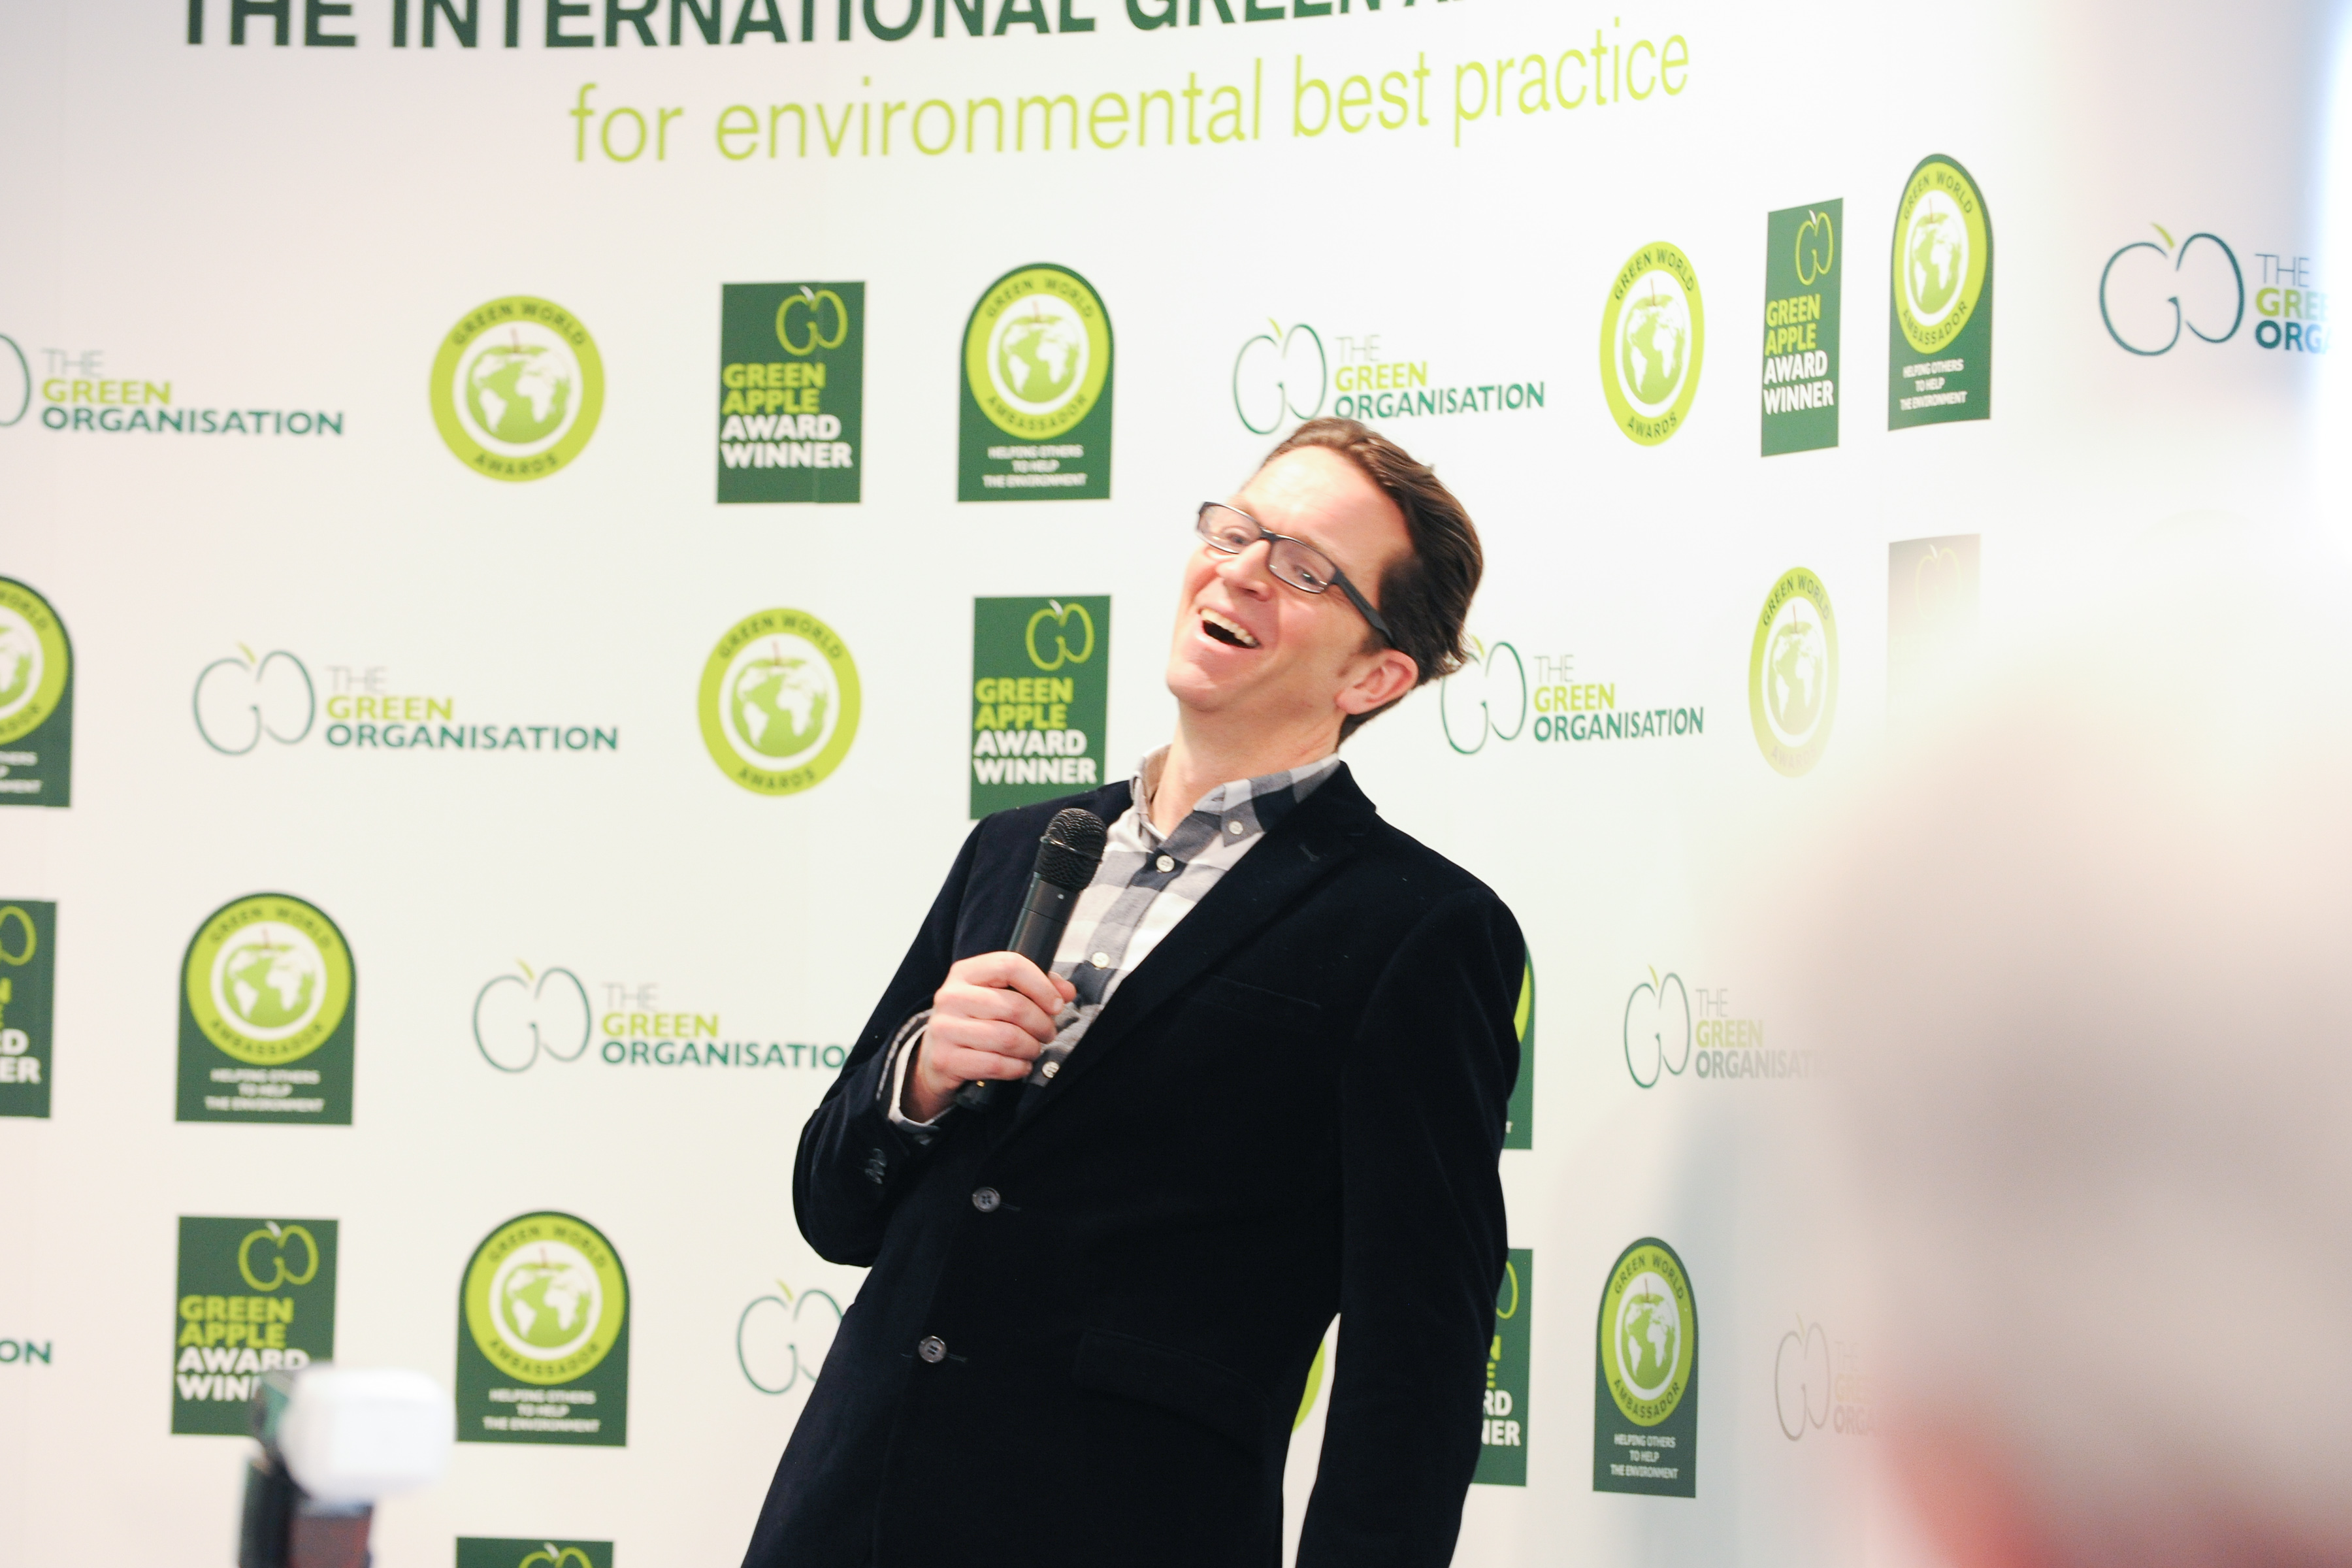 International Green Apple Awards